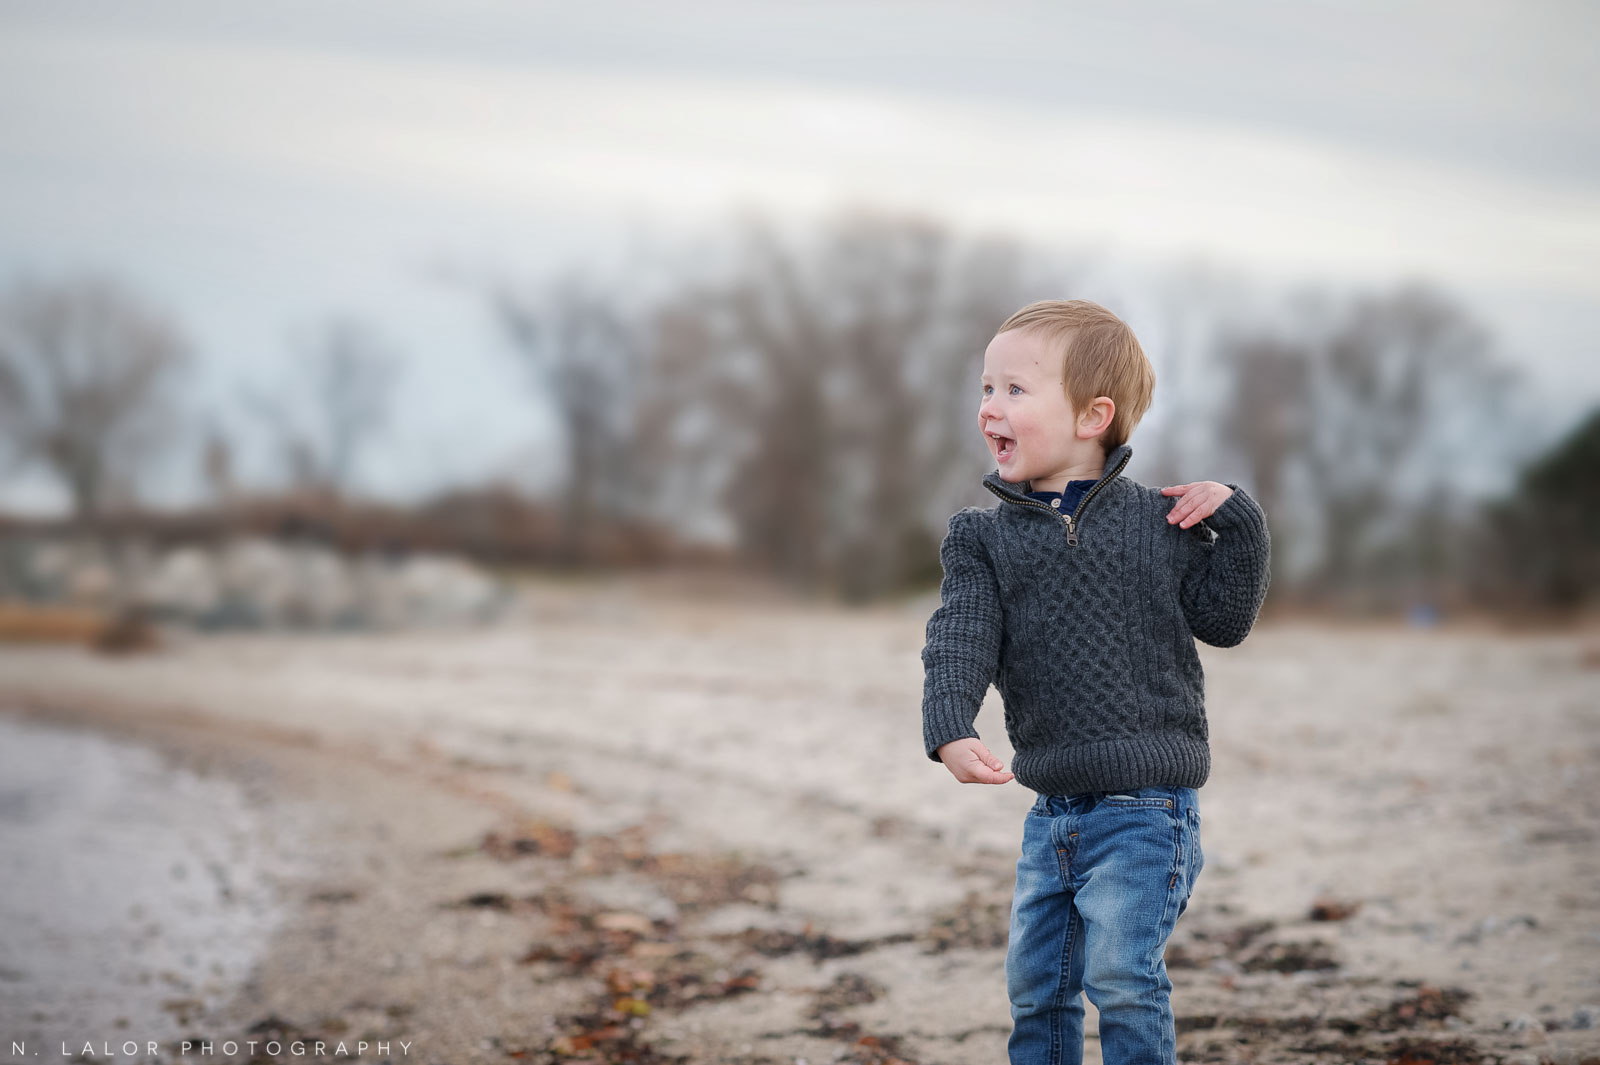 nlalor-photography-120613-styled-boy-winter-beach-session-old-greenwich-5.jpg